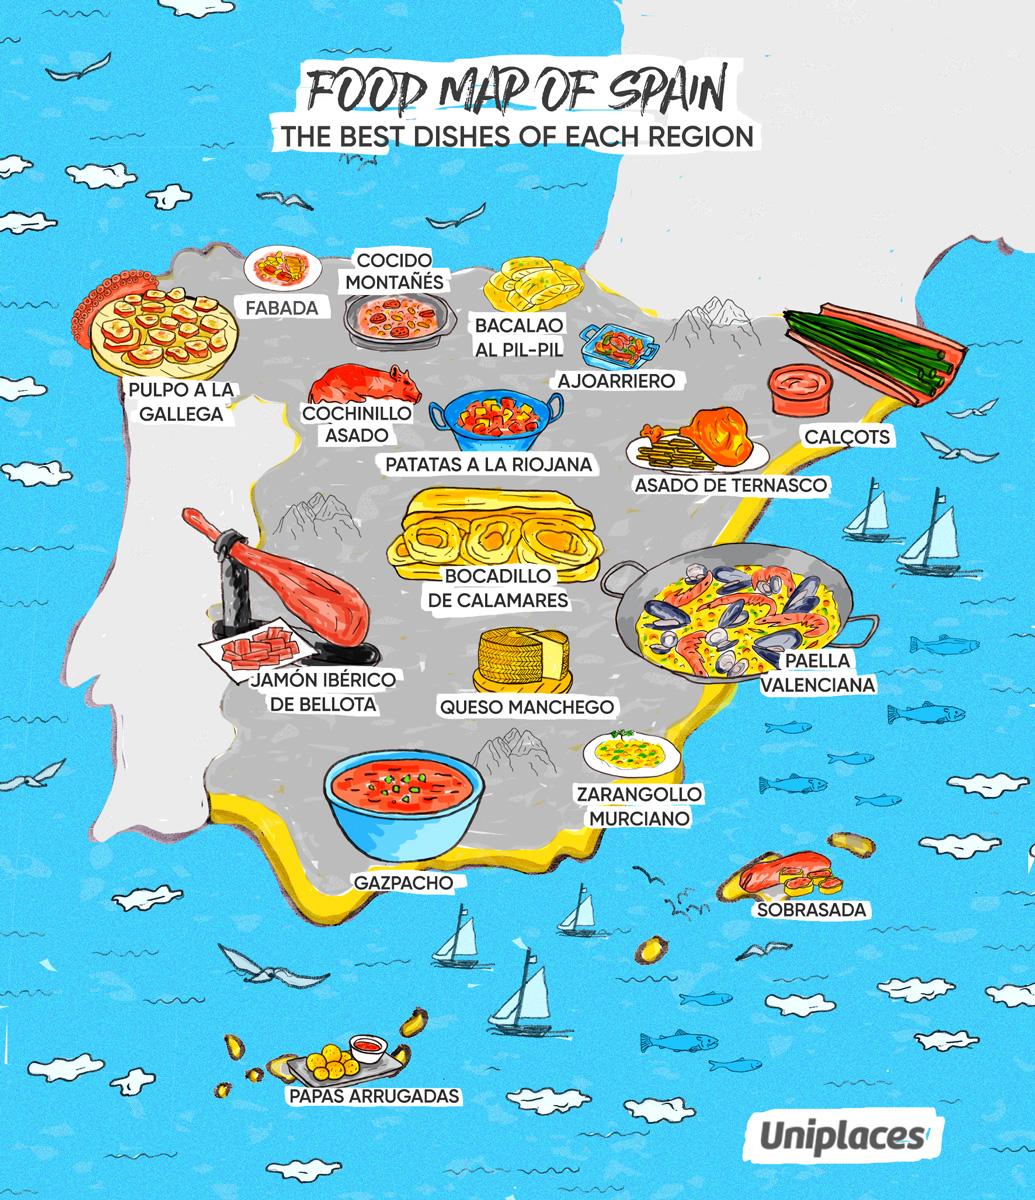 https://imaginarythinking.net/wp-content/uploads/2020/06/FoodsMap-Spain-ENweb.jpg